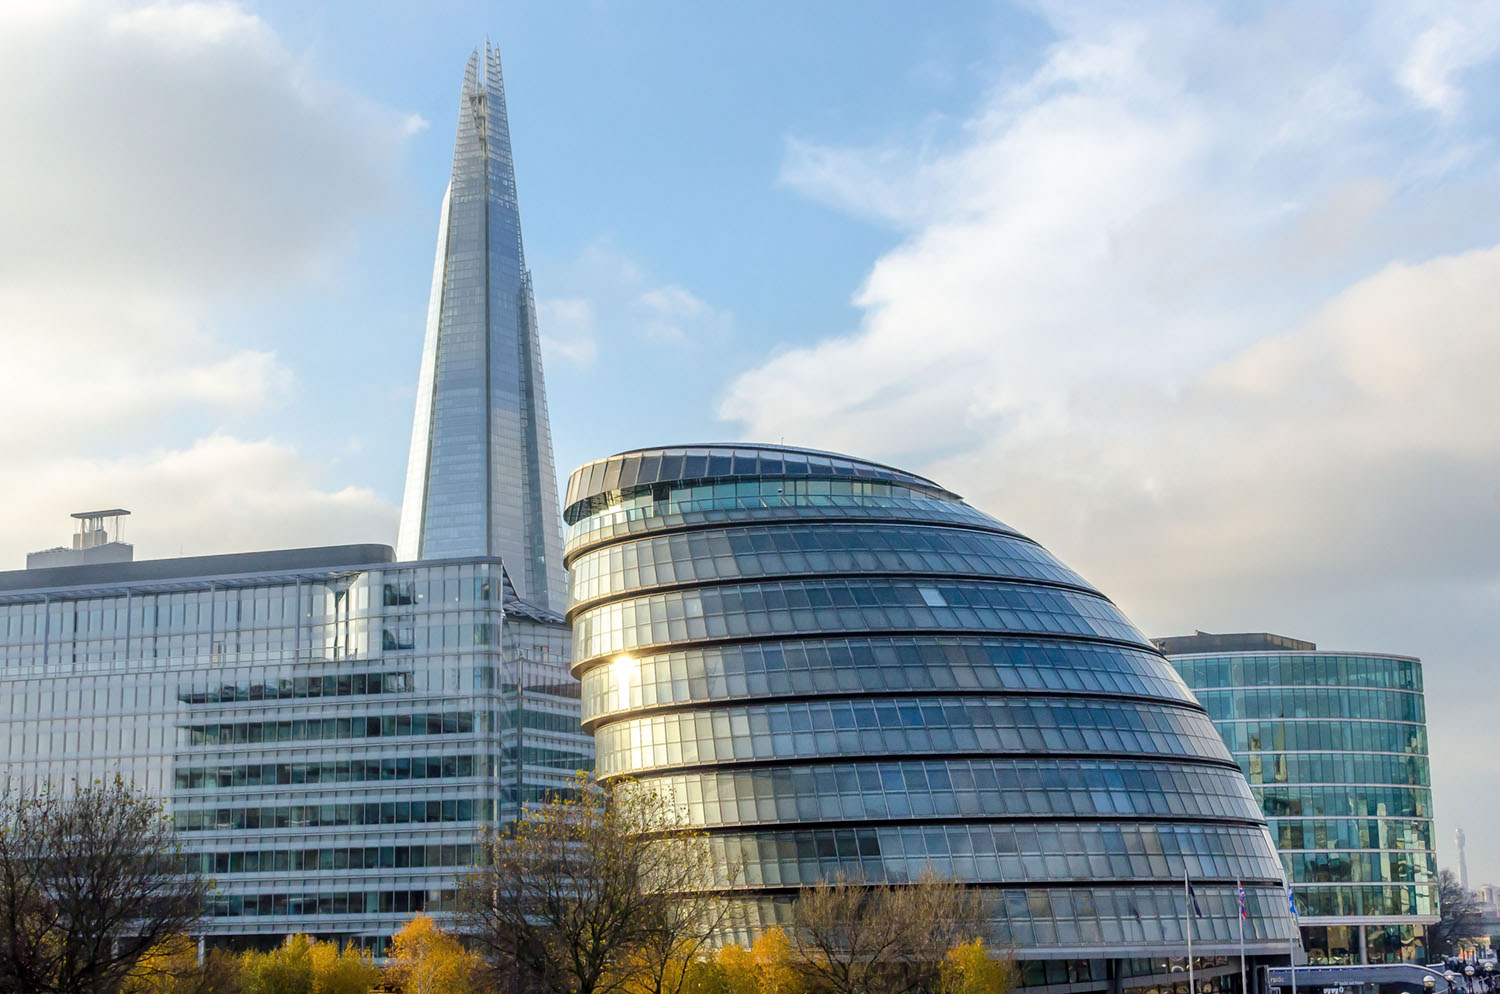 https://i1.wp.com/digital-photography-school.com/wp-content/uploads/2019/08/Thames-Architecture.jpg?resize=1500%2C994&ssl=1